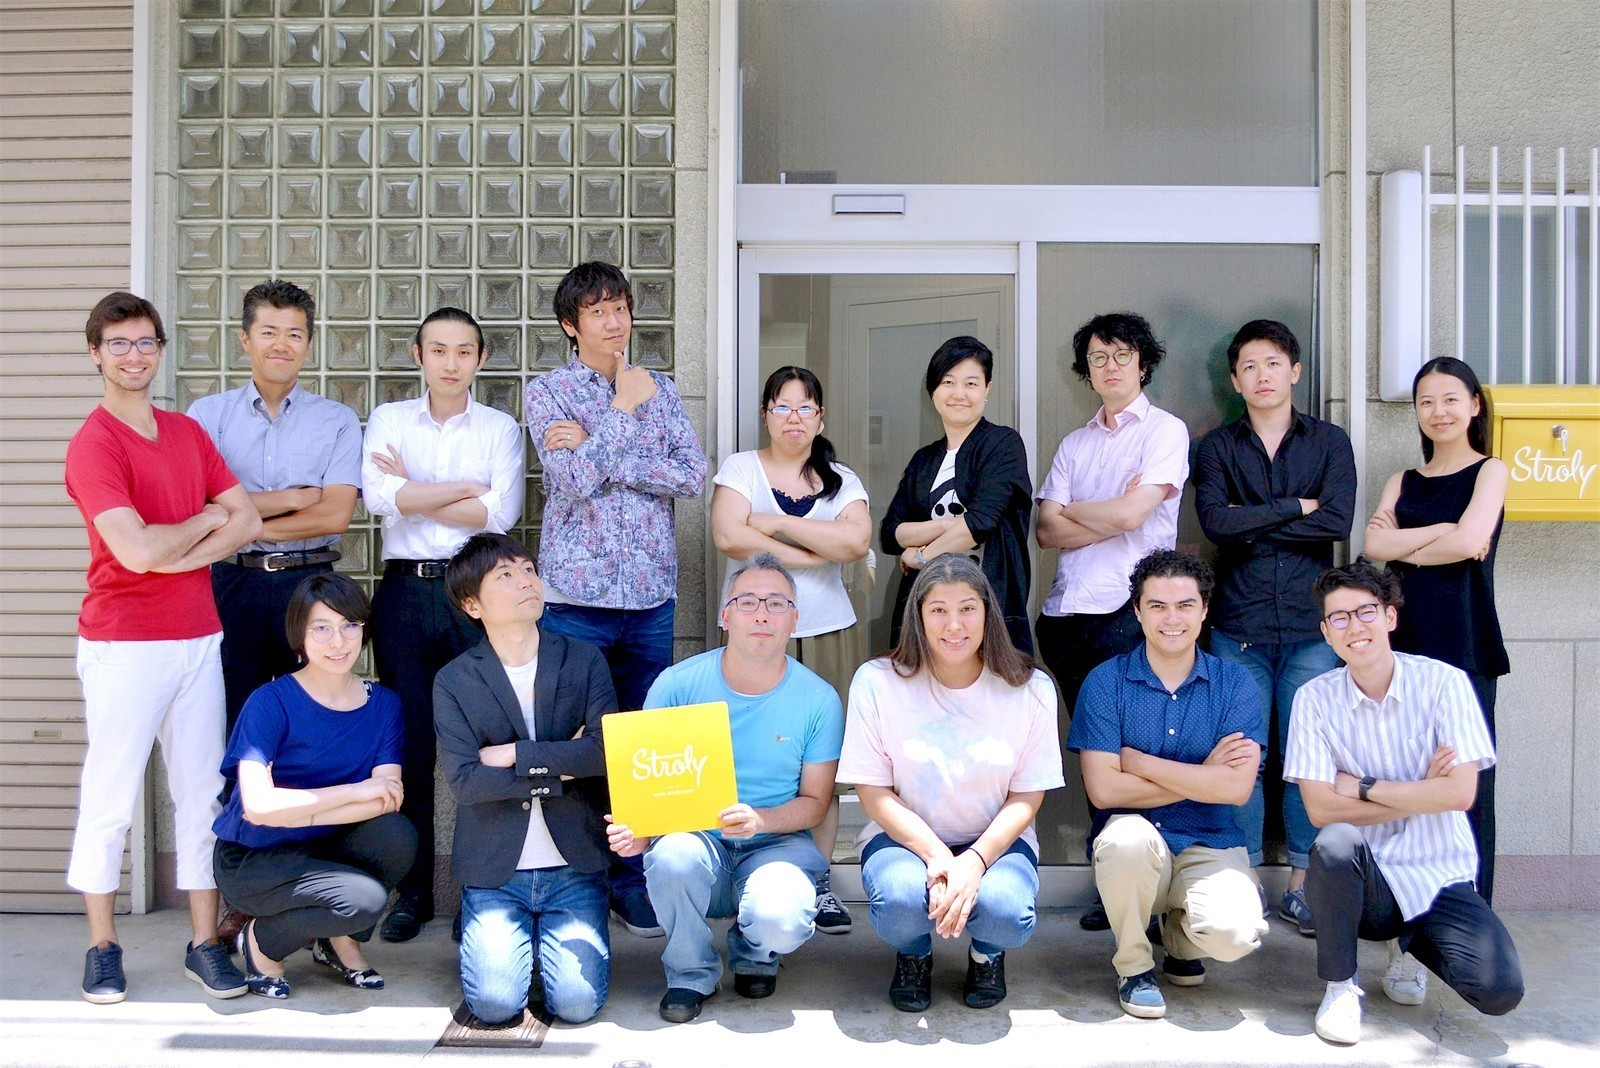 【Kyoto office】Stroly is Hiring Tech Lead Engineers